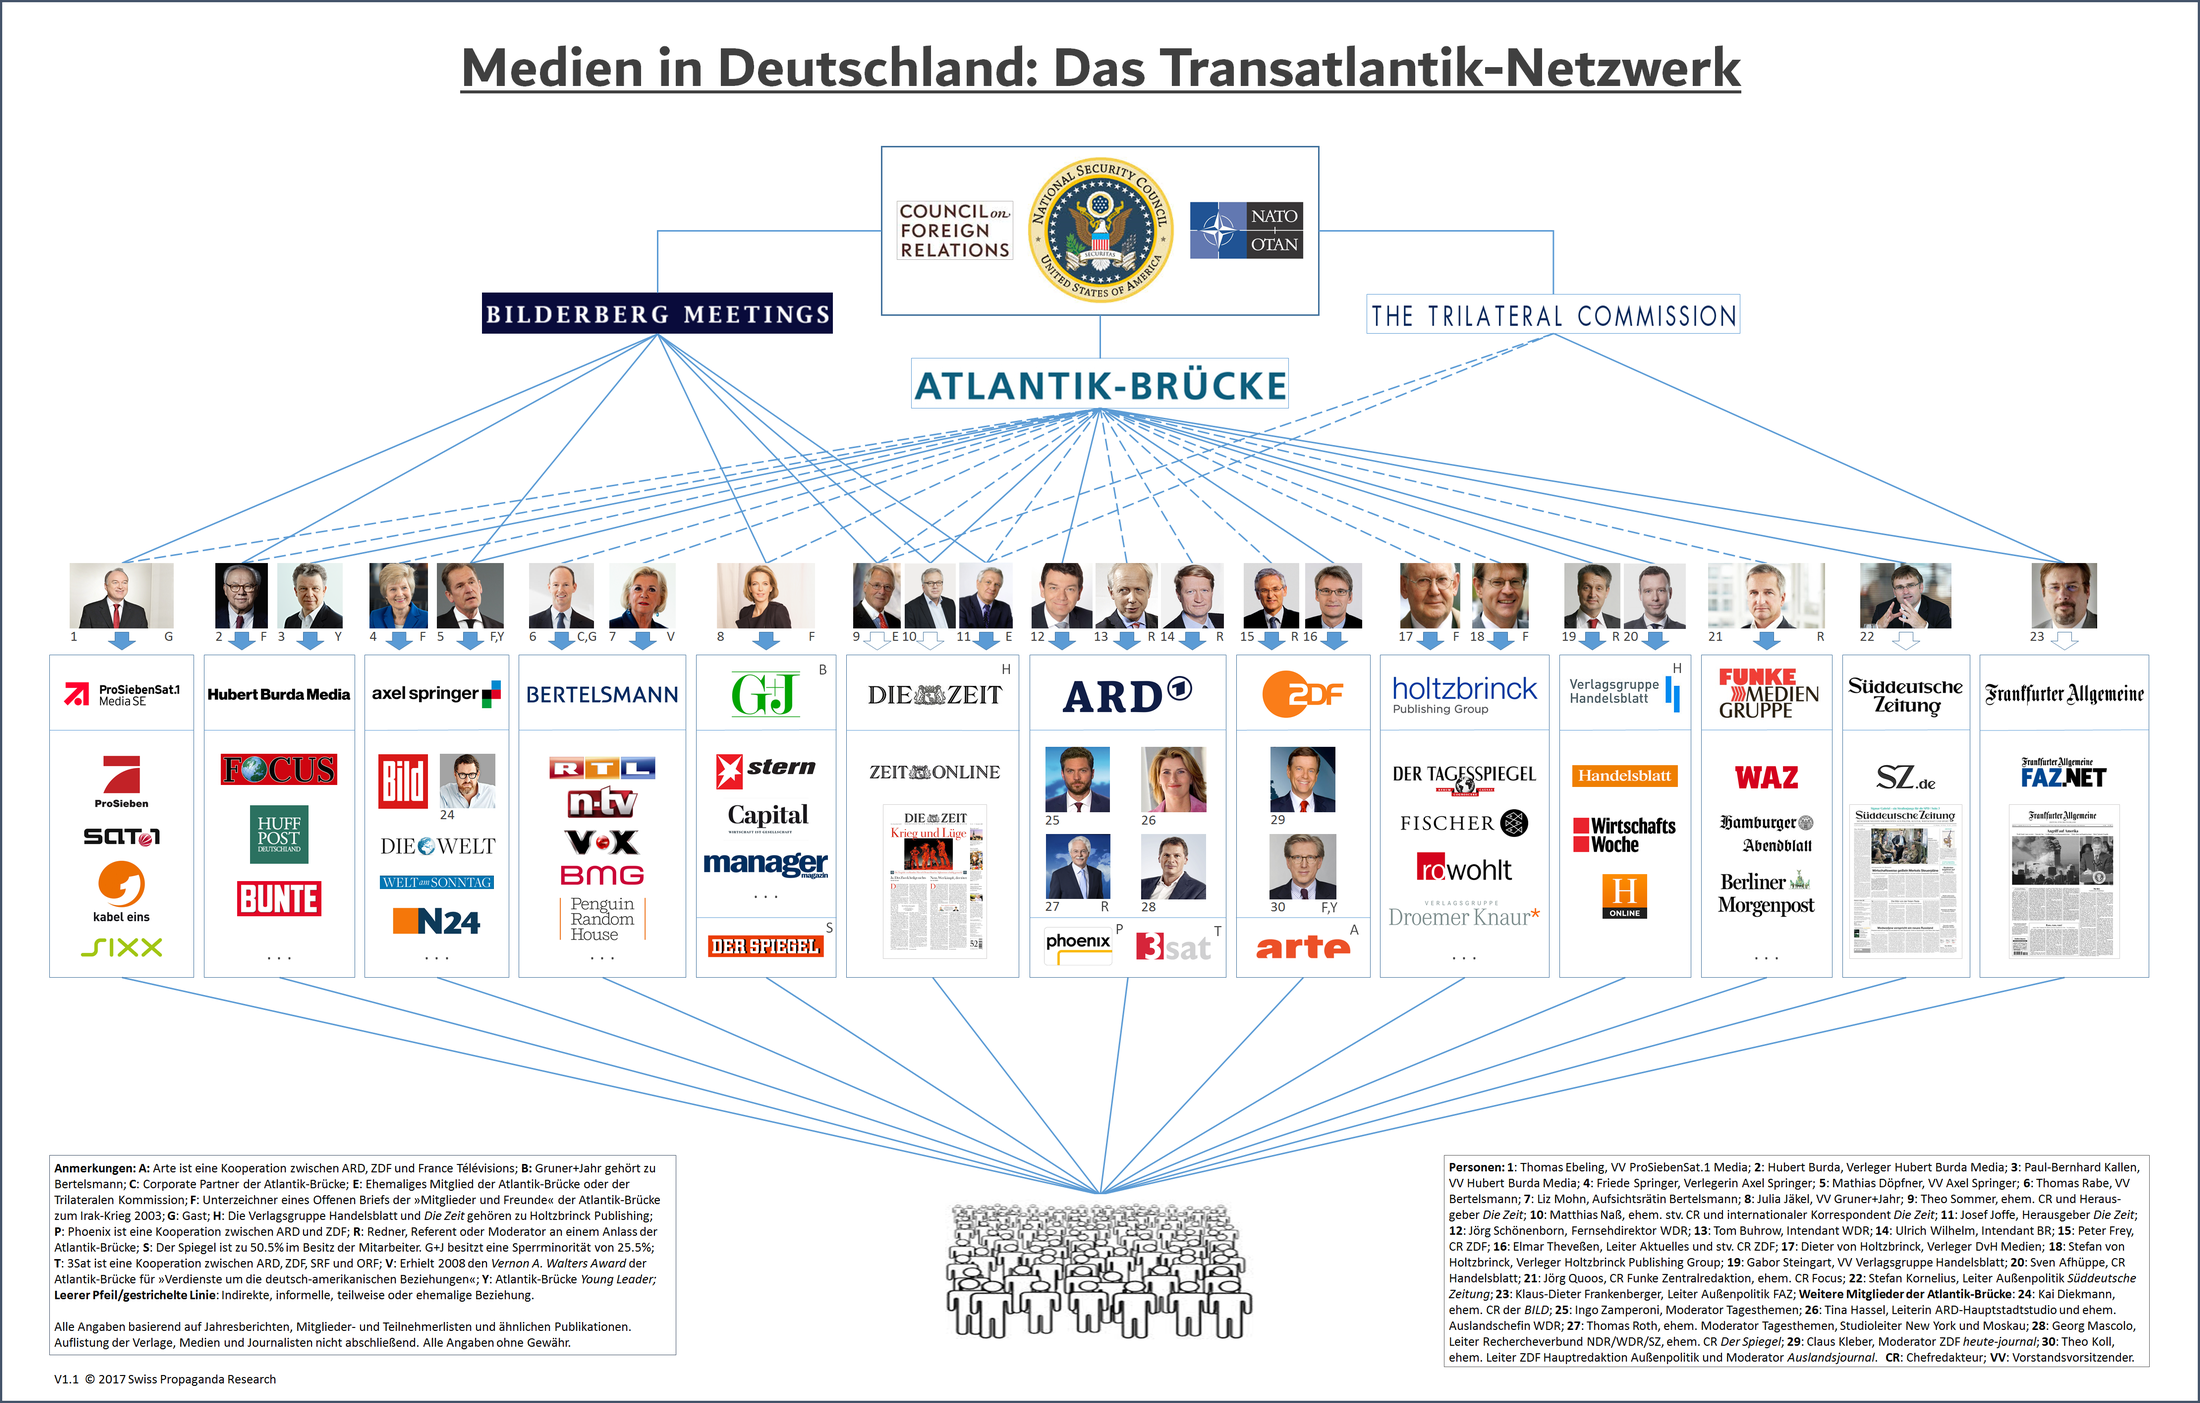 Transatlantik-Netzwerk-atlantik-bruecke-bilderberger-trilaterale-kommission-council-on-foreign-relations-geopolitische-propaganda-kritisches-netzwerk-Tagesschau-Tagesthemen-ARD-ZDF